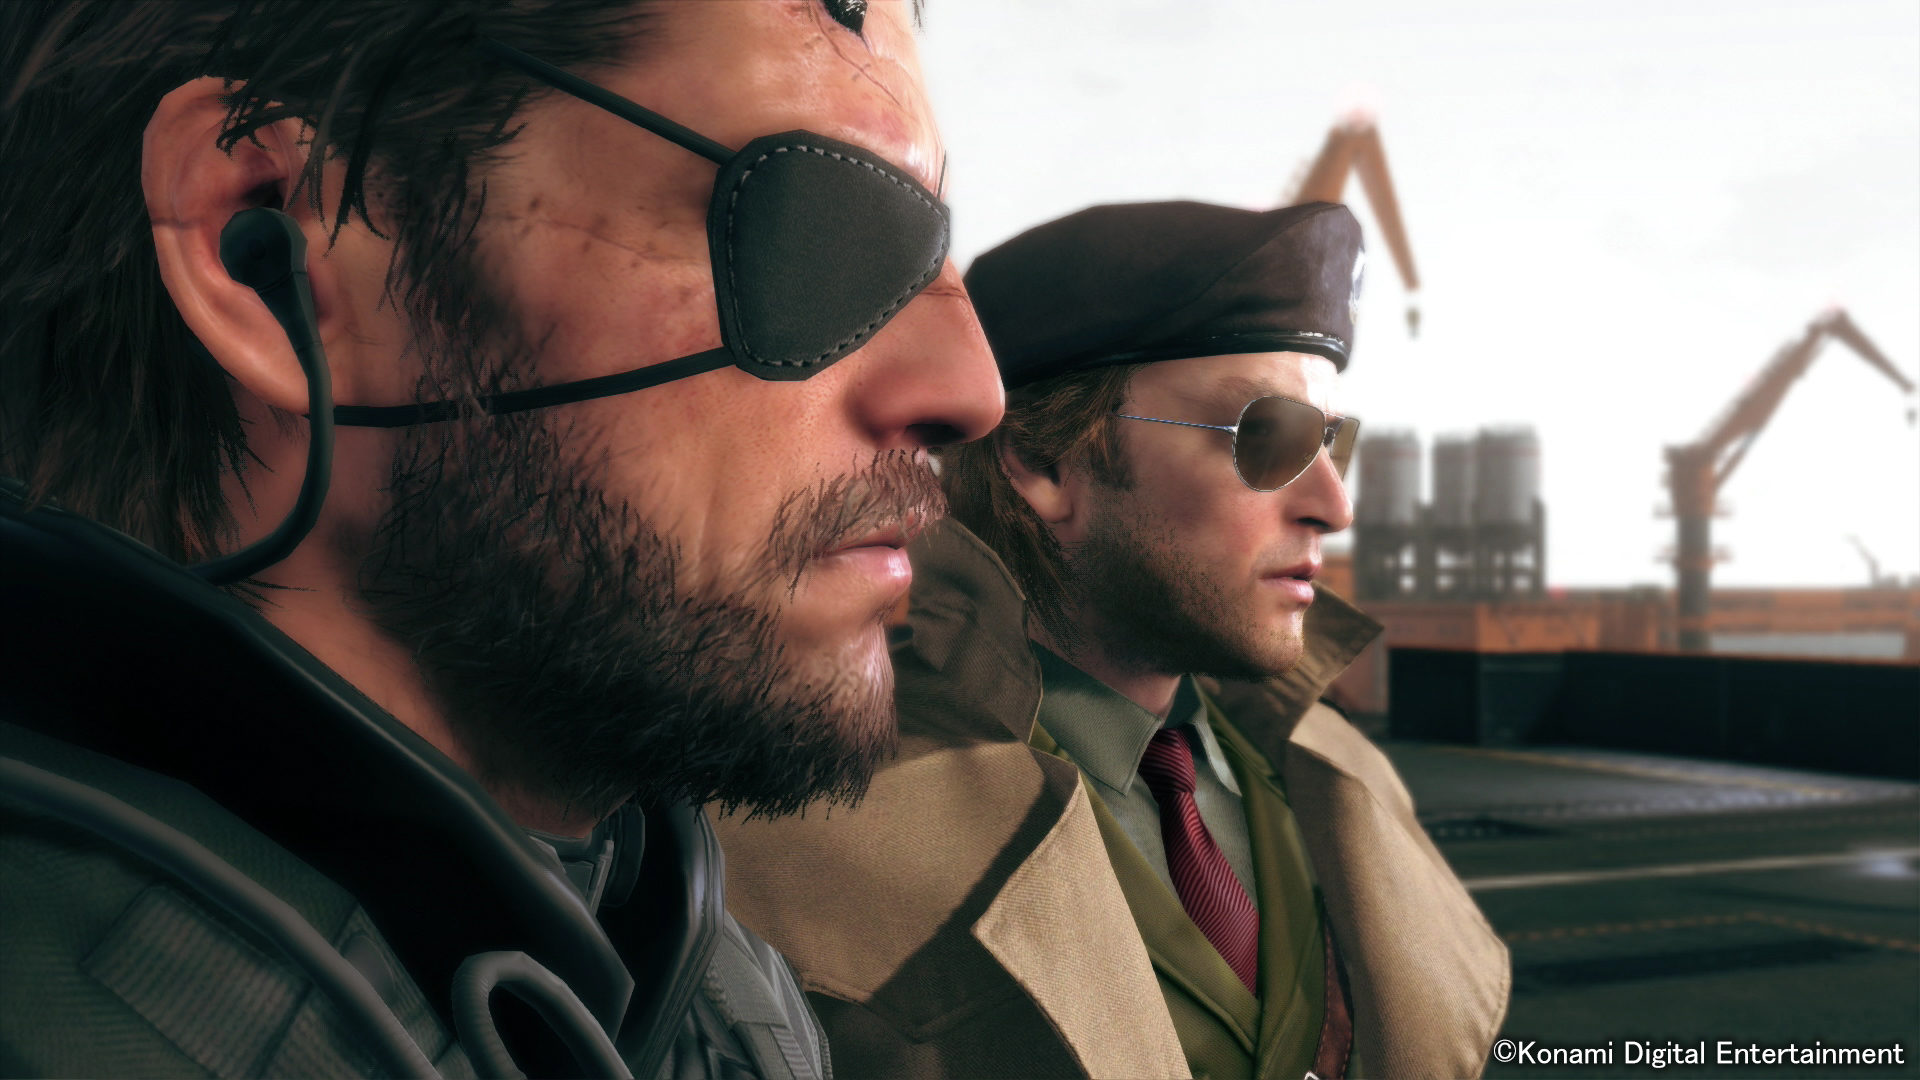 Metal Gear Solid 5 The Phantom Pain How To Unlock All Story Cassette Tapes Vg247 Pictures and wallpapers for your desktop. vg247 com